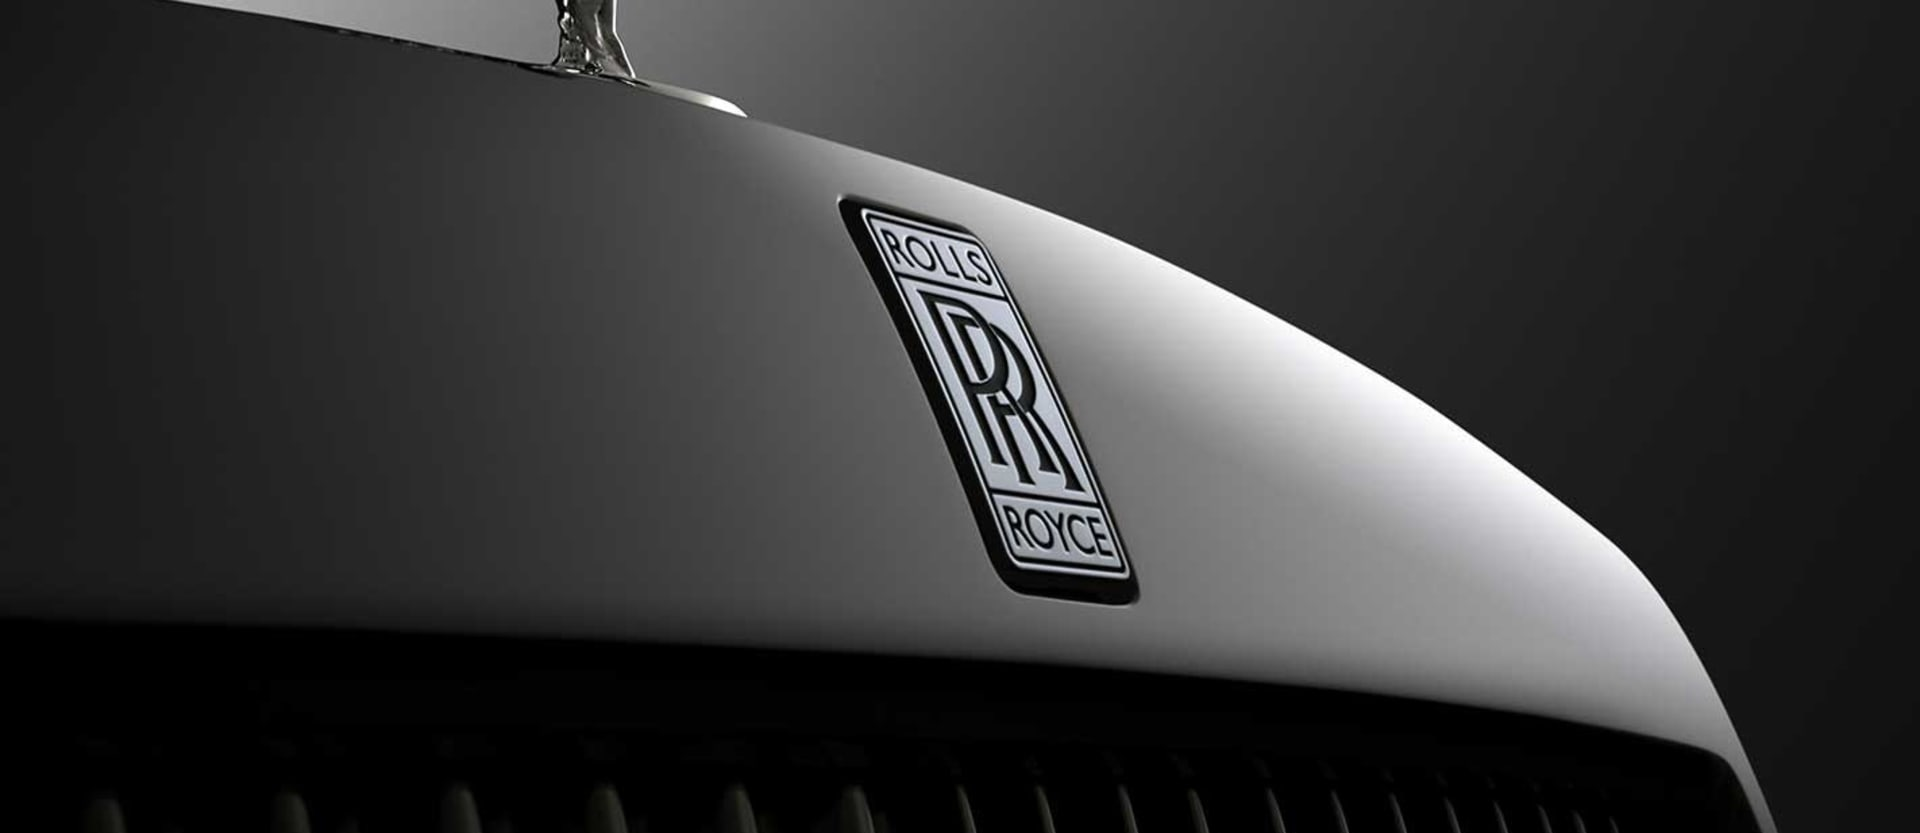 Rolls-Royce CEO commits V12s